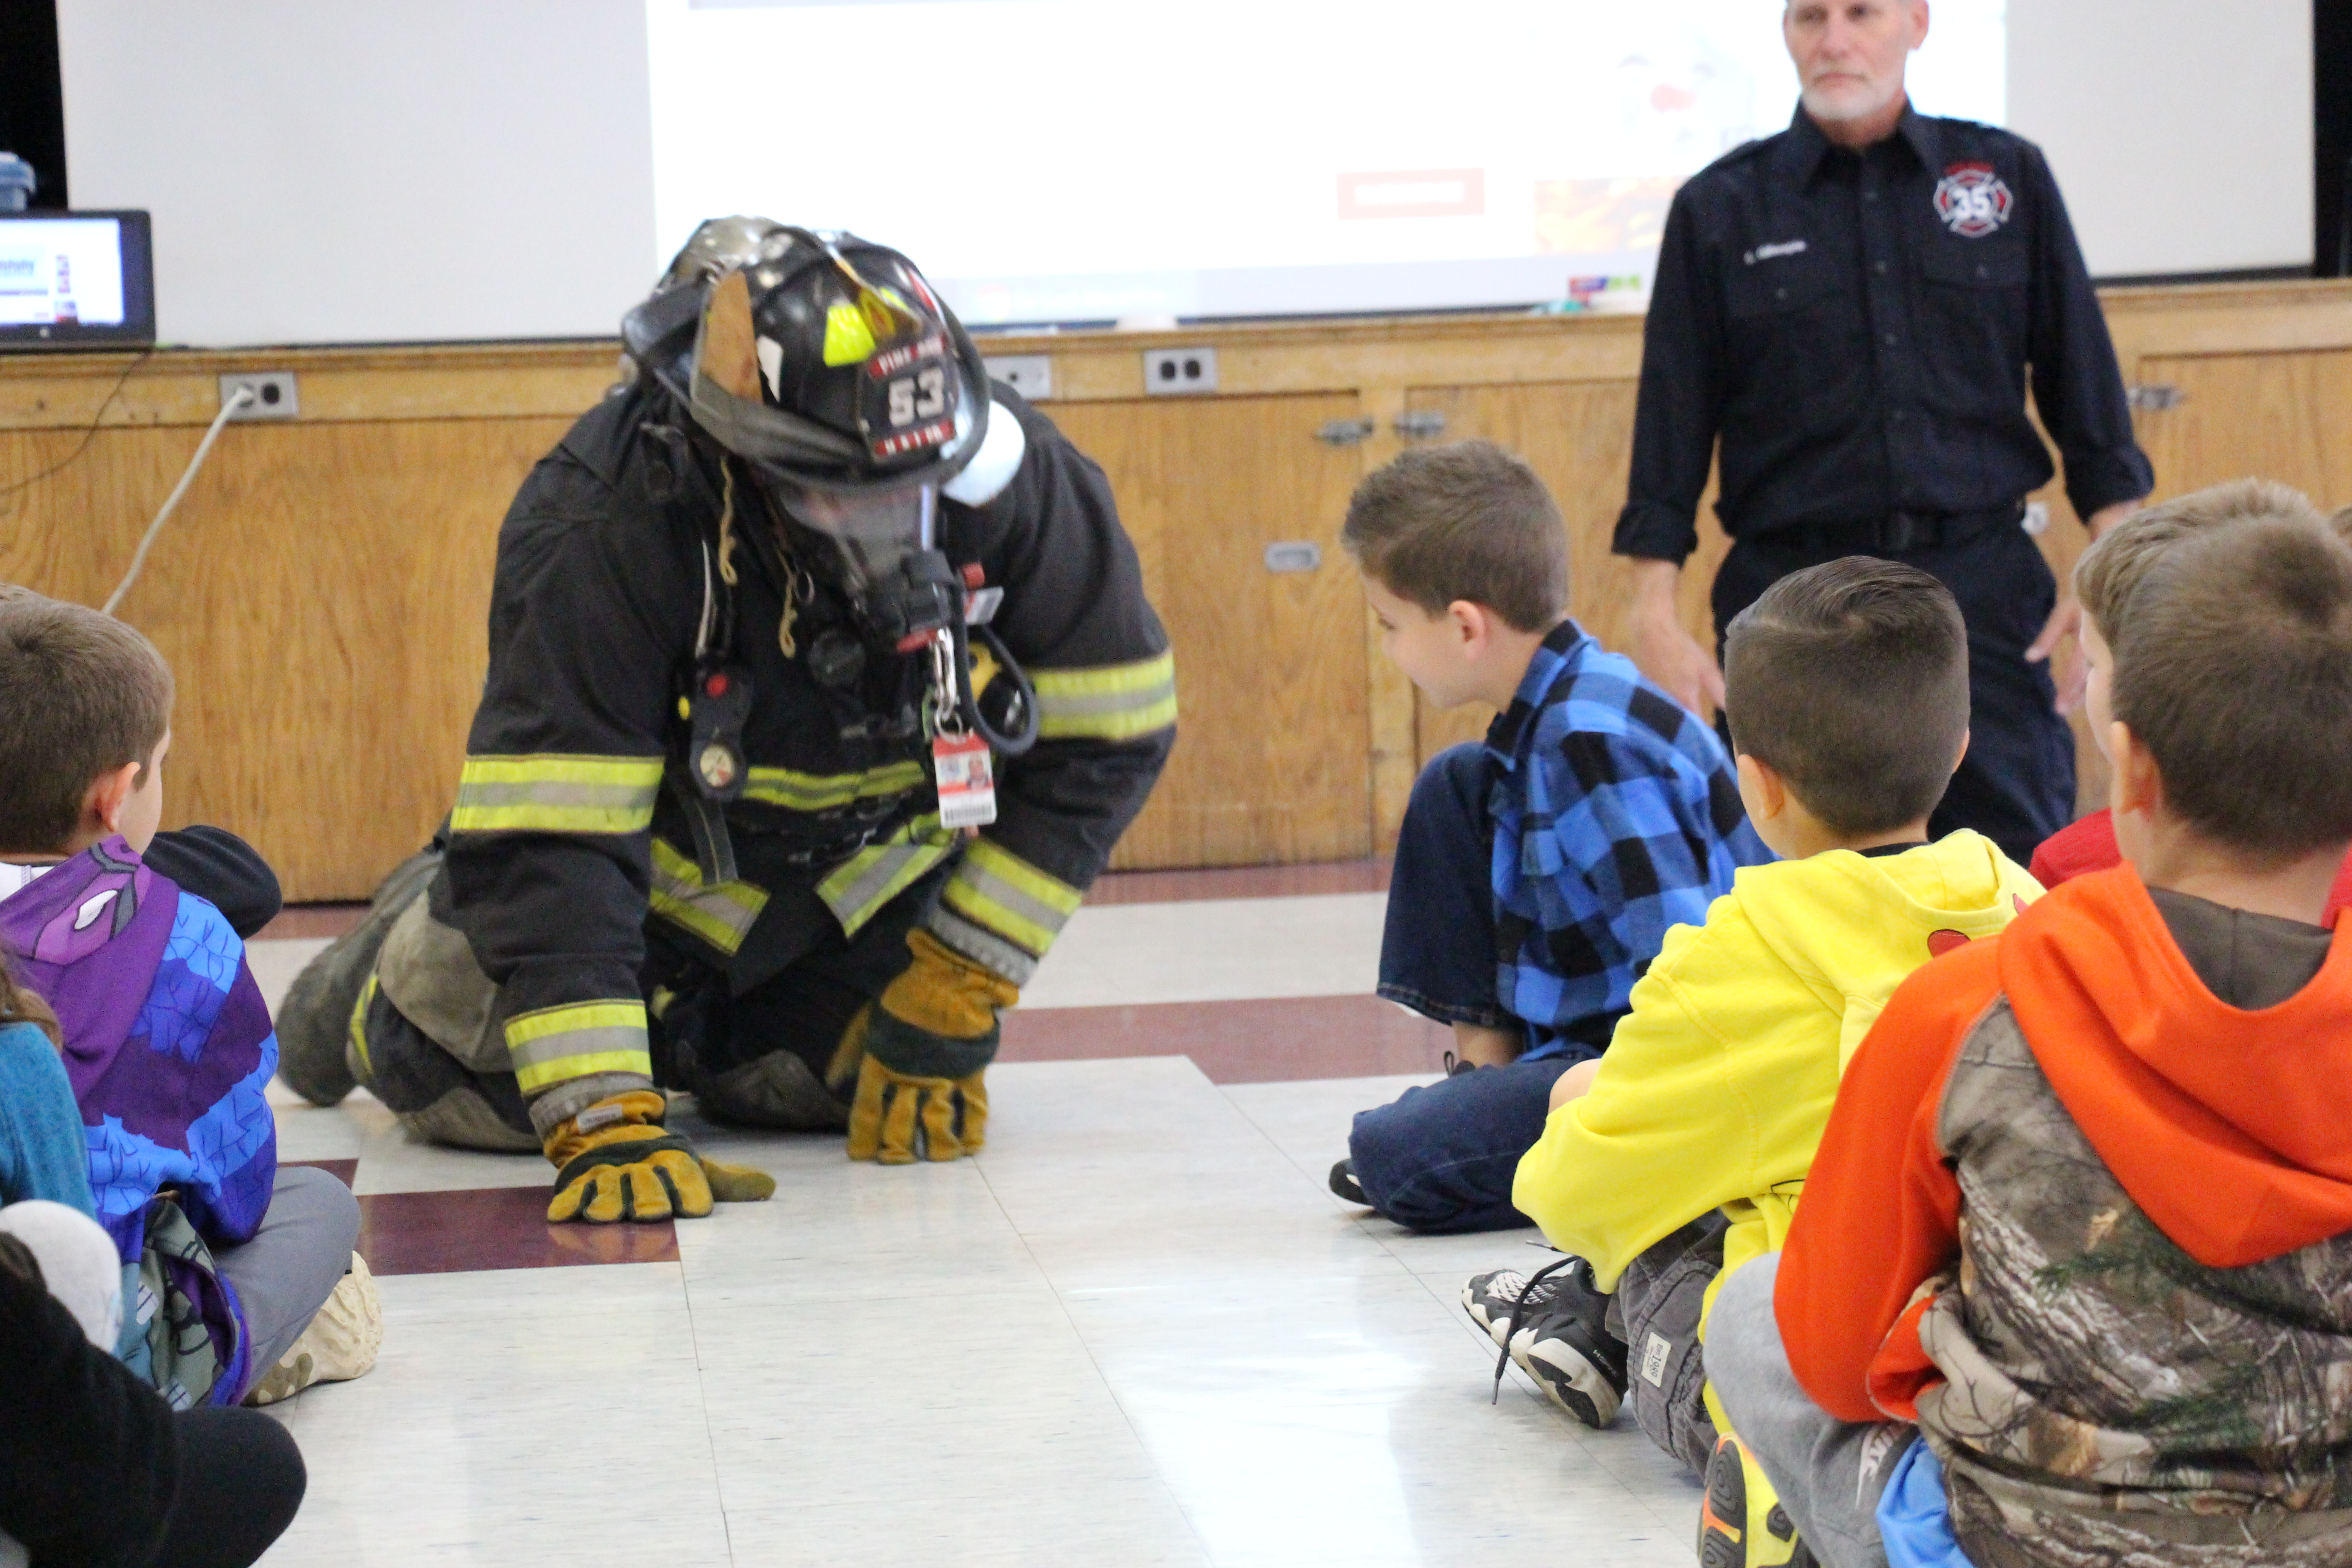 A man in full firefighter gear is on his hands and knees about to crawl through a group of elementary school students.